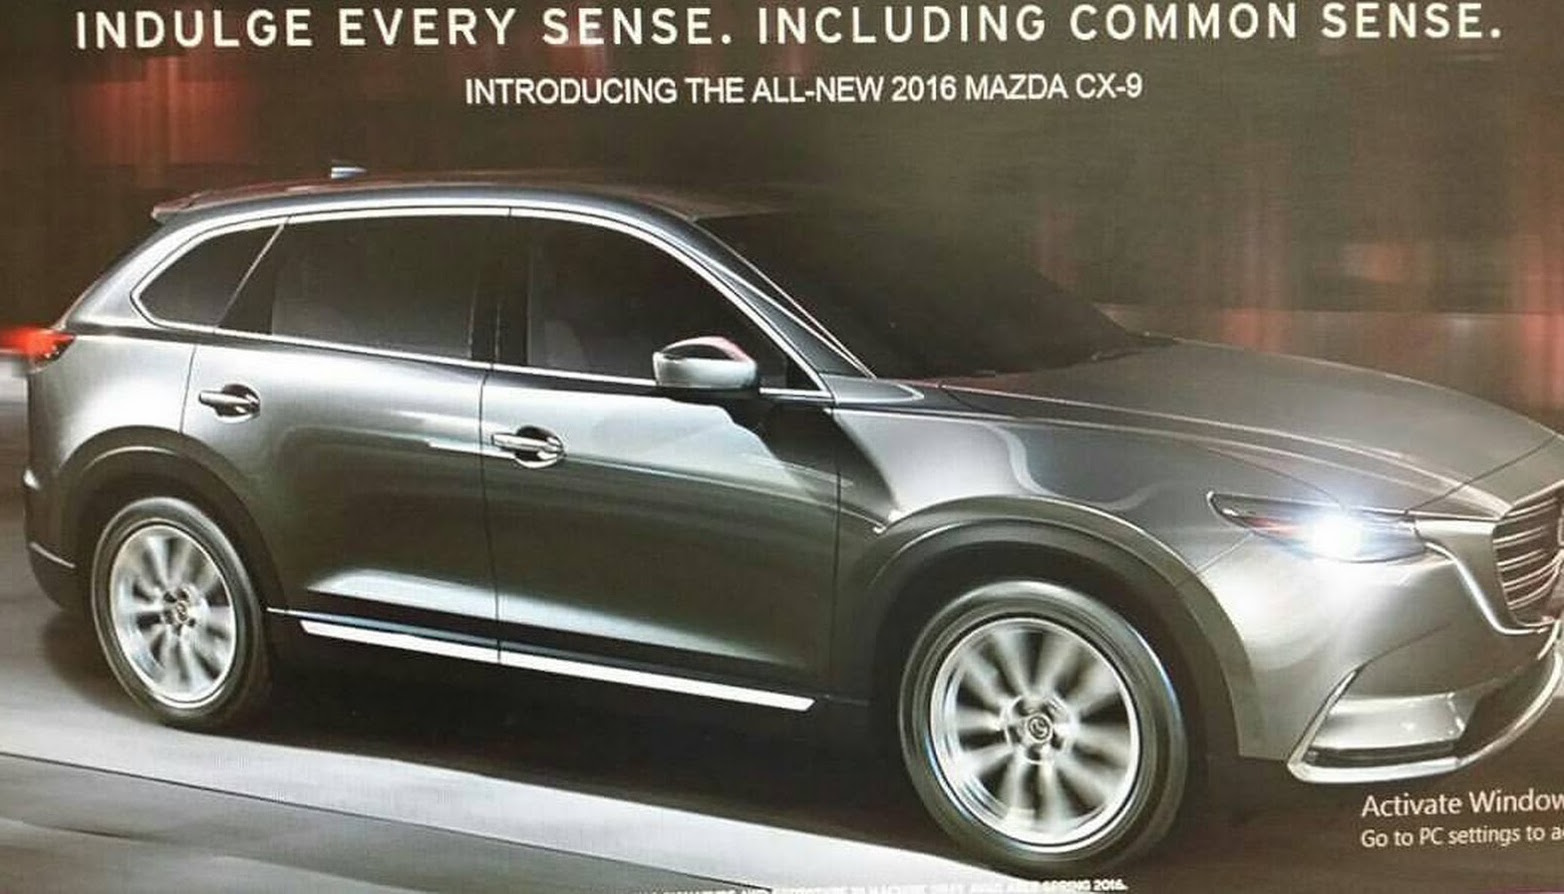 2016 mazda cx 9 revealed in leaked e brochure performancedrive. Black Bedroom Furniture Sets. Home Design Ideas